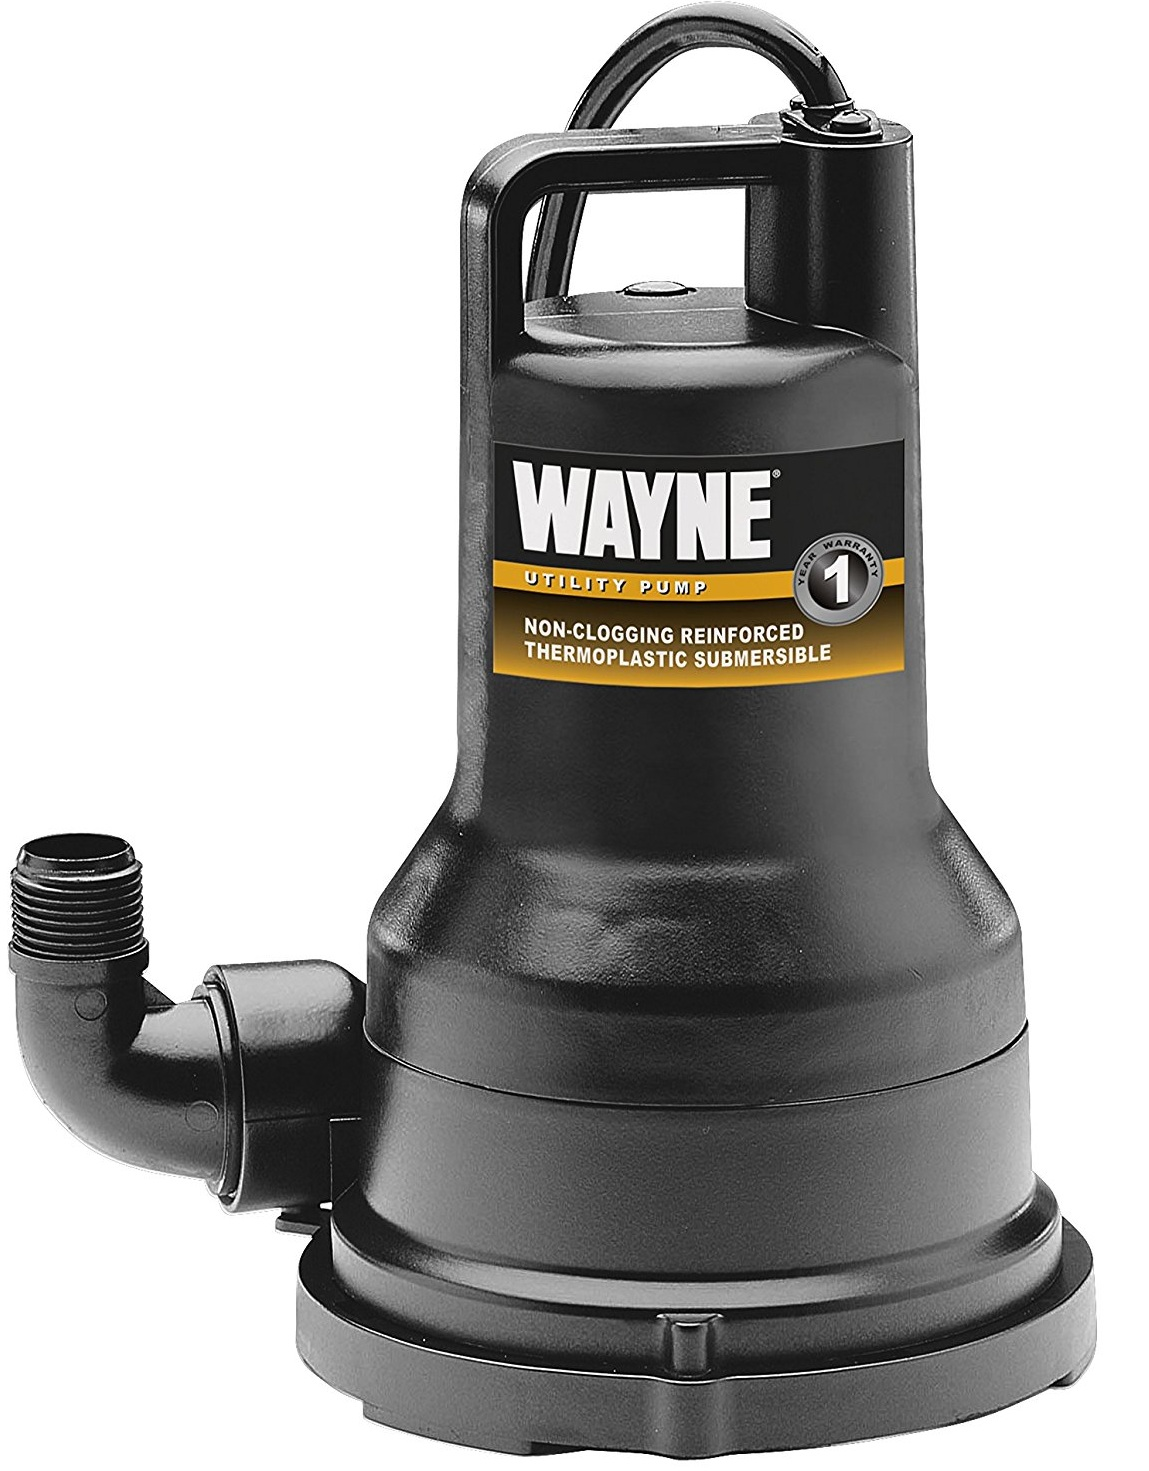 Wayne Water Systems VIP50 Sump Pump Review